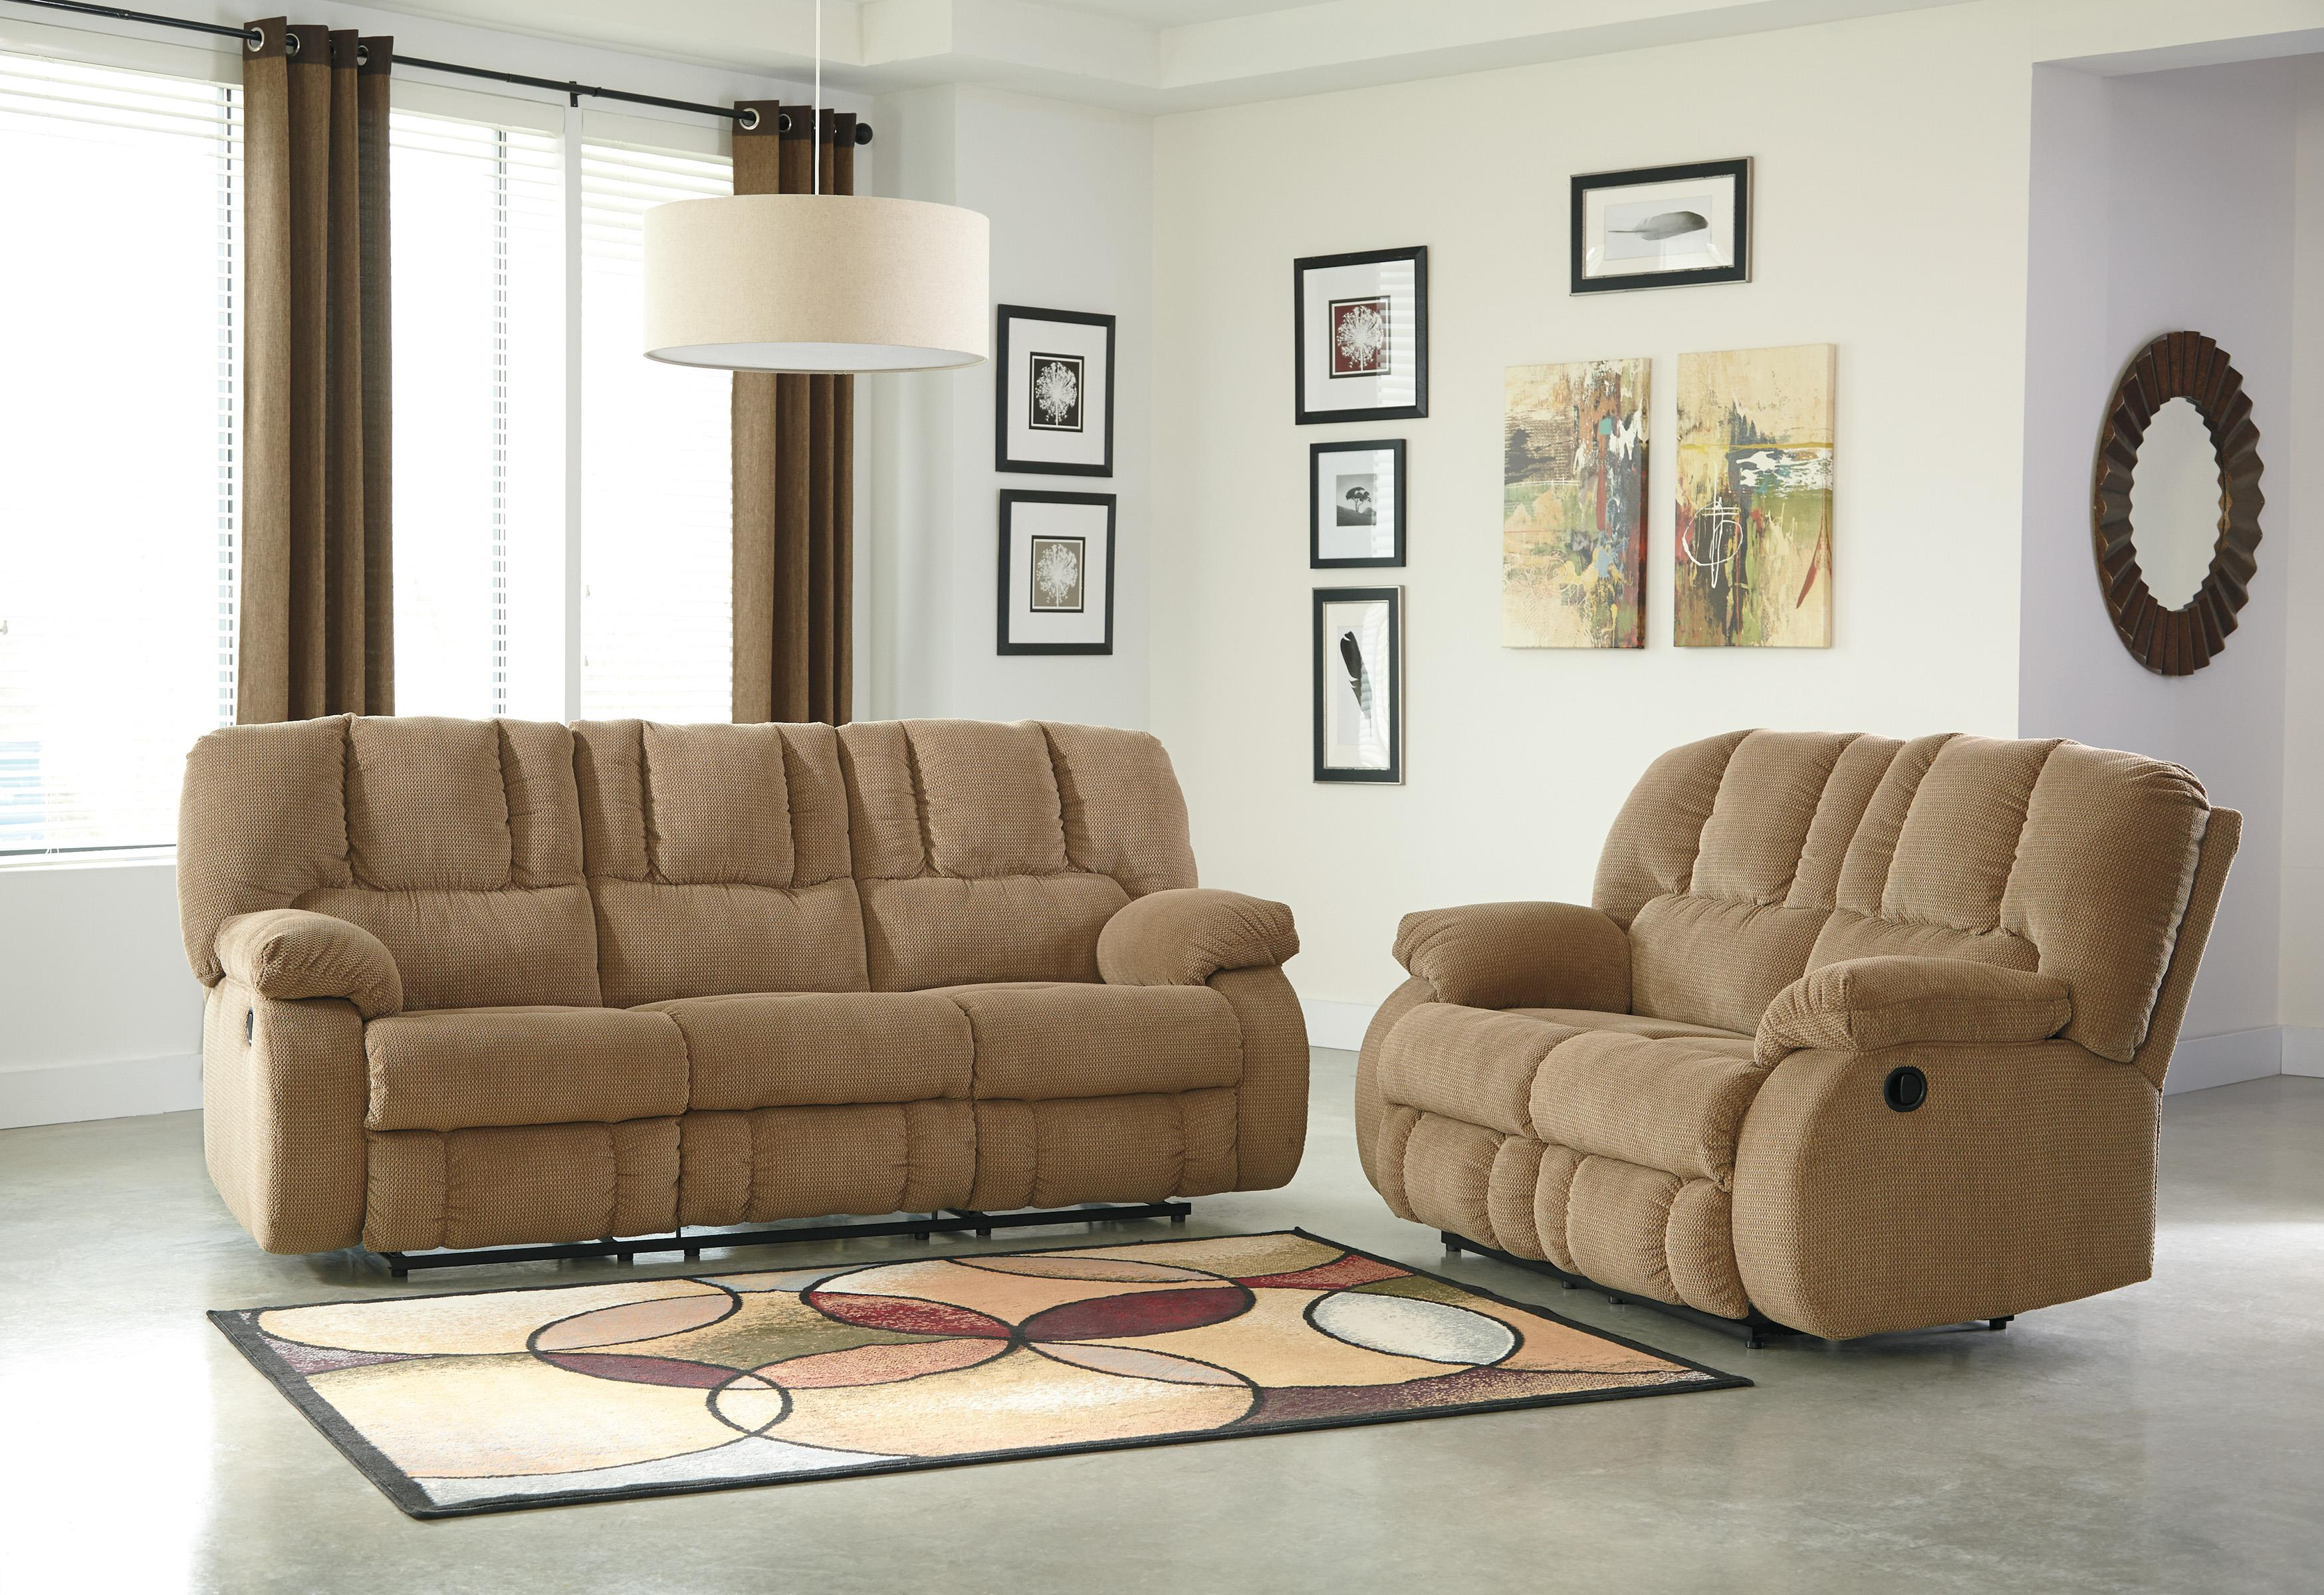 Benchcraft By Ashley Roan Reclining Living Room Group Royal Furniture Reclining Living Room